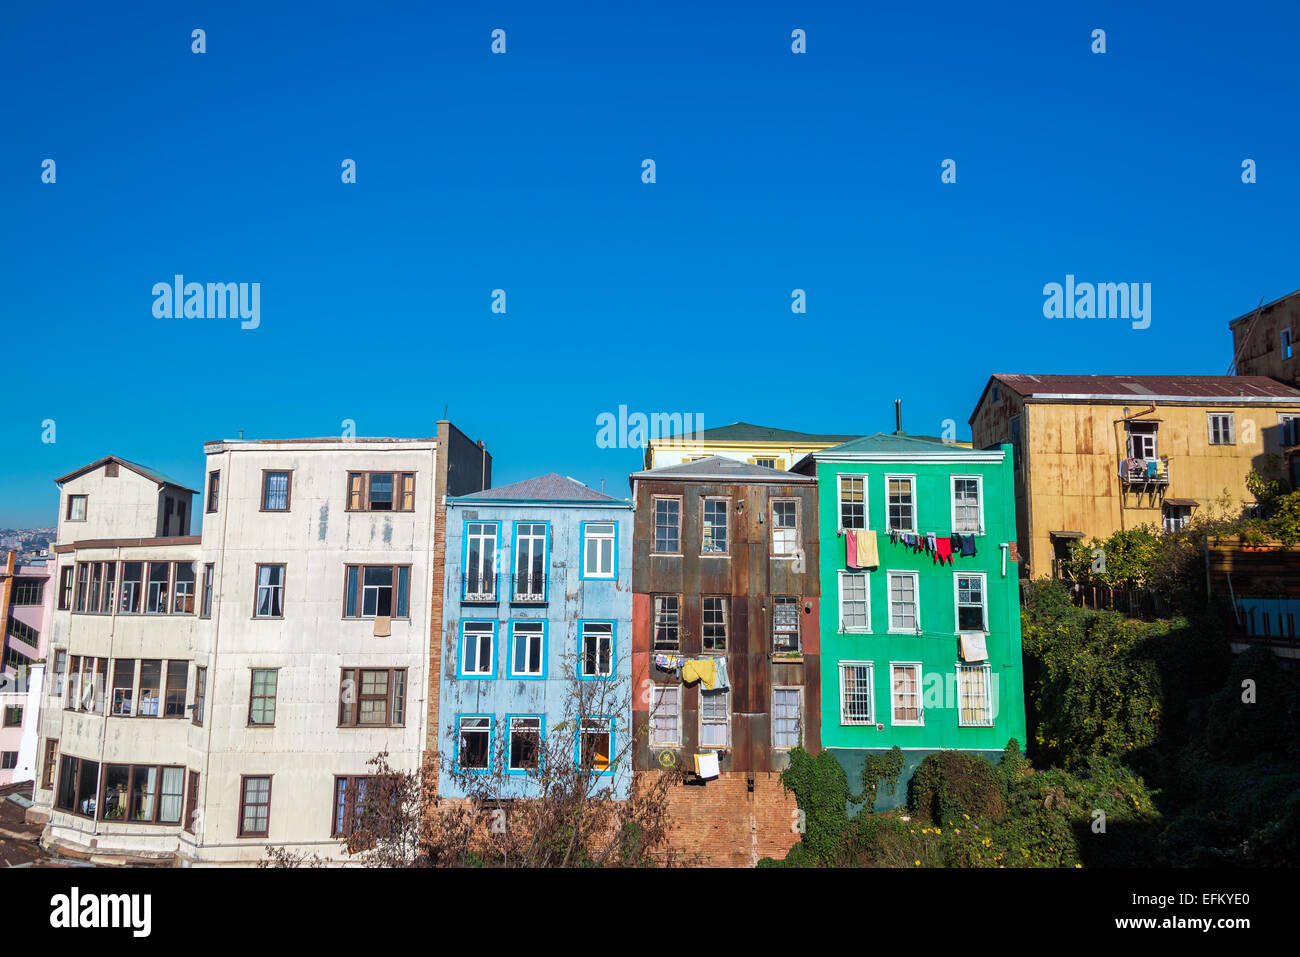 Rustic colorful houses in Valparaiso, Chile - Stock Image